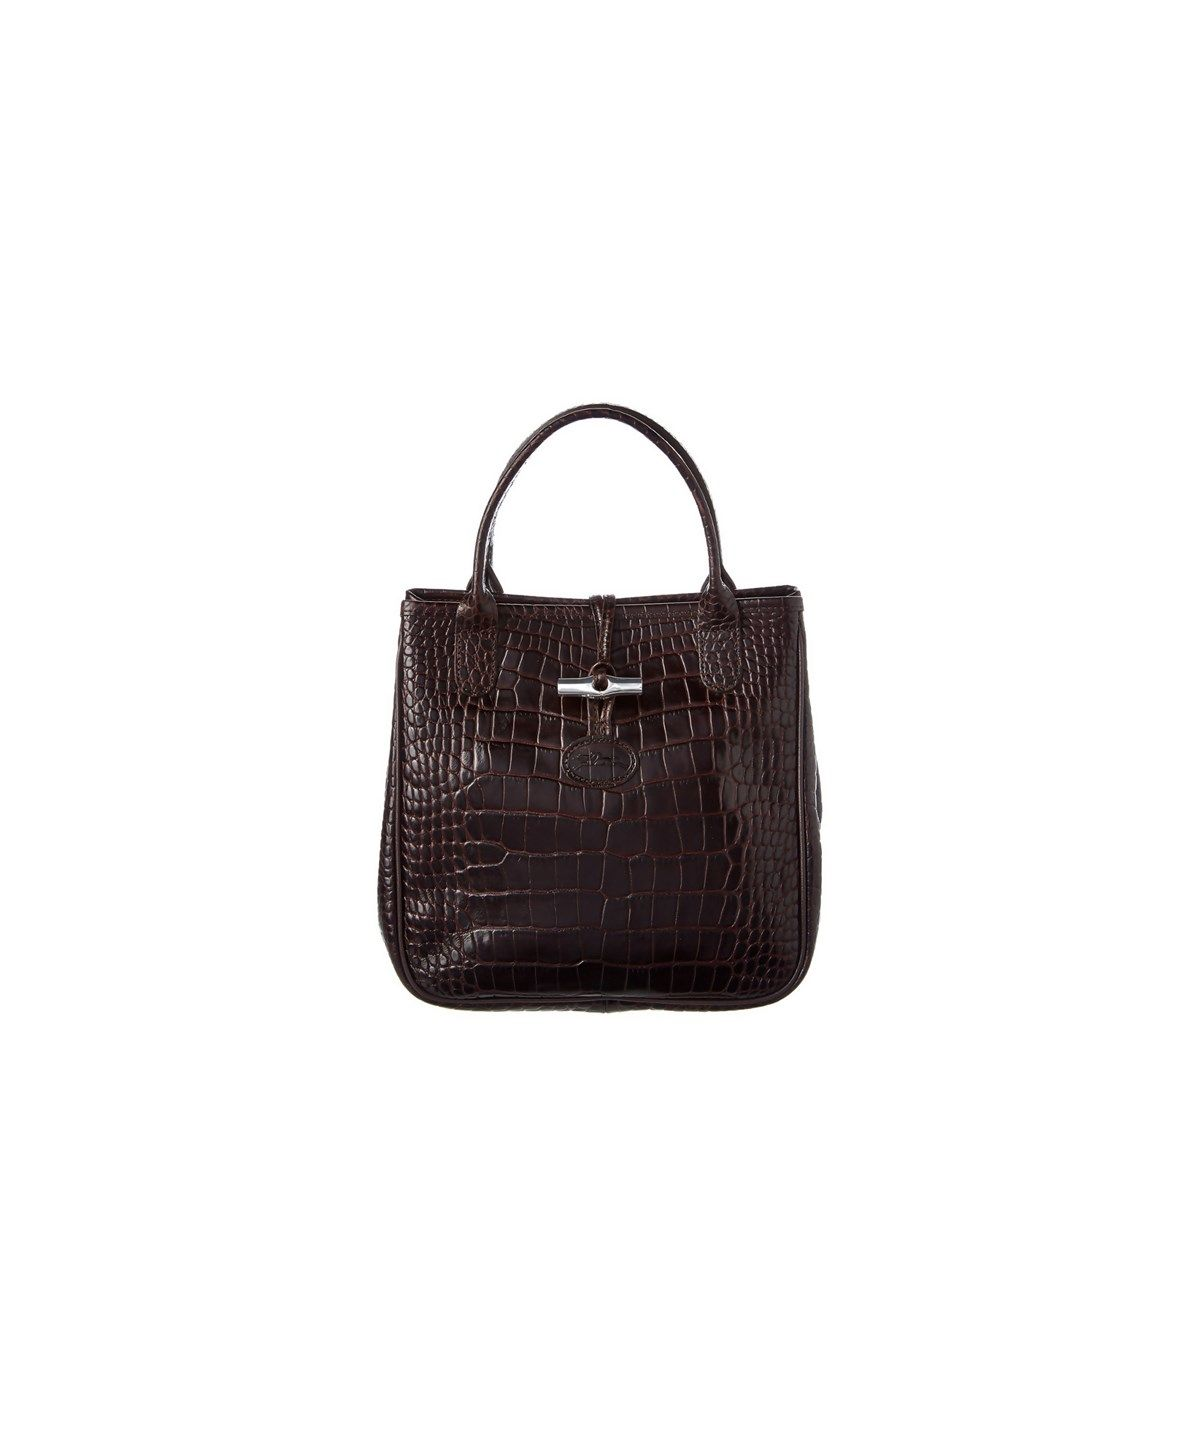 79ae523f7a94 LONGCHAMP Longchamp Roseau Croco Embossed Leather Tote .  longchamp  bags   leather  hand bags  tote